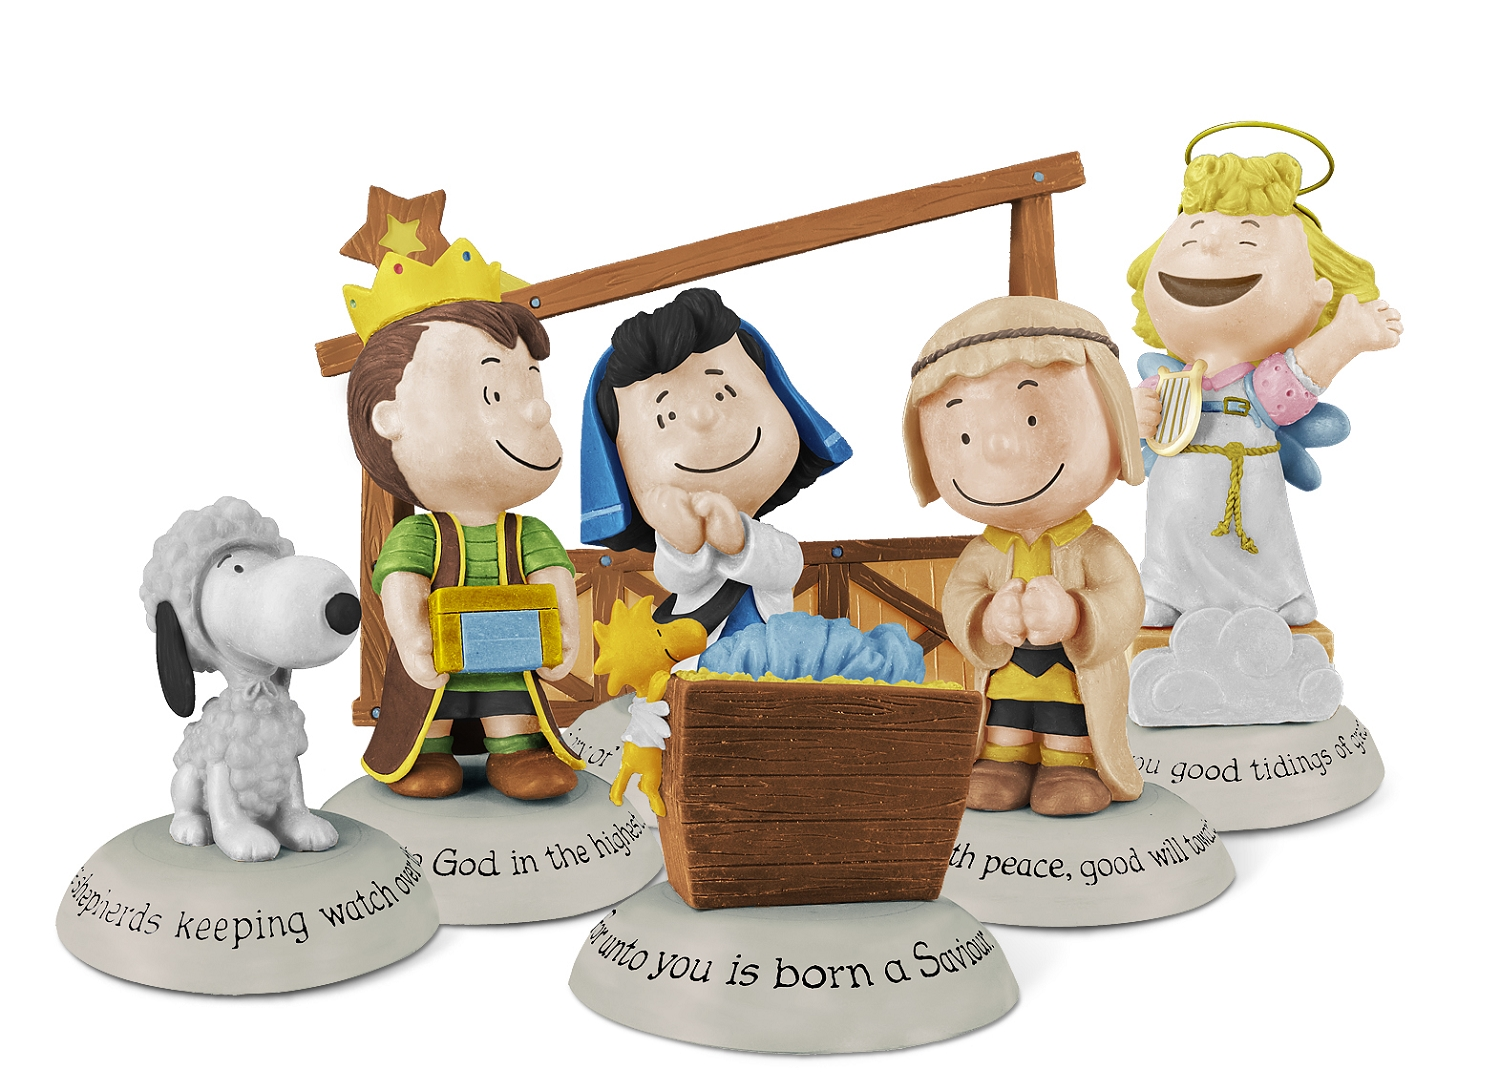 2012 Peanuts Nativity Collection